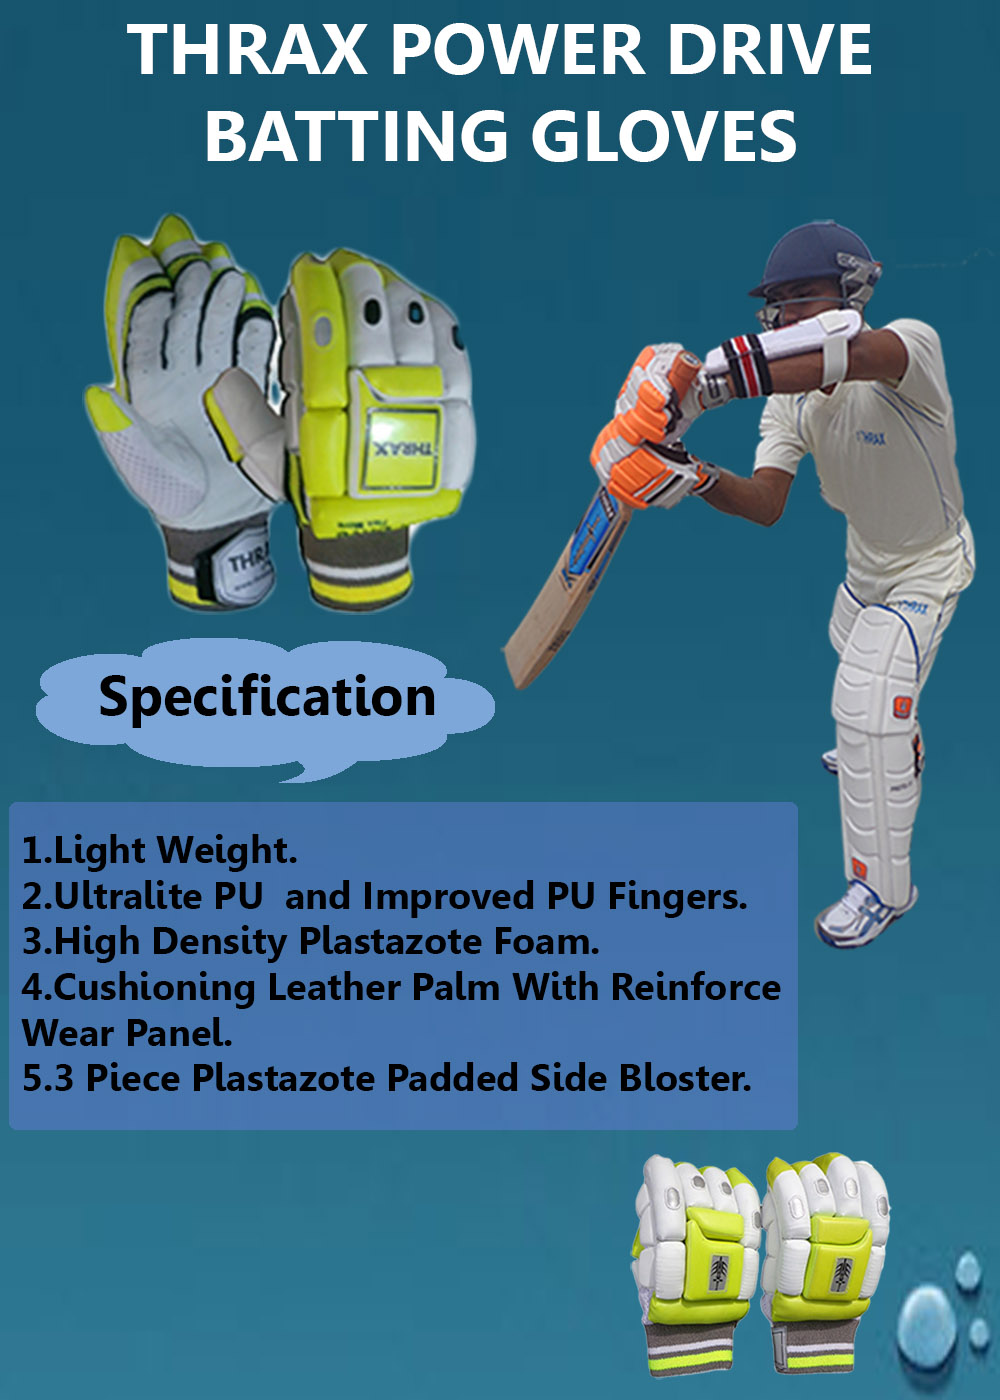 Thrax Power Drive Cricket Batting Gloves